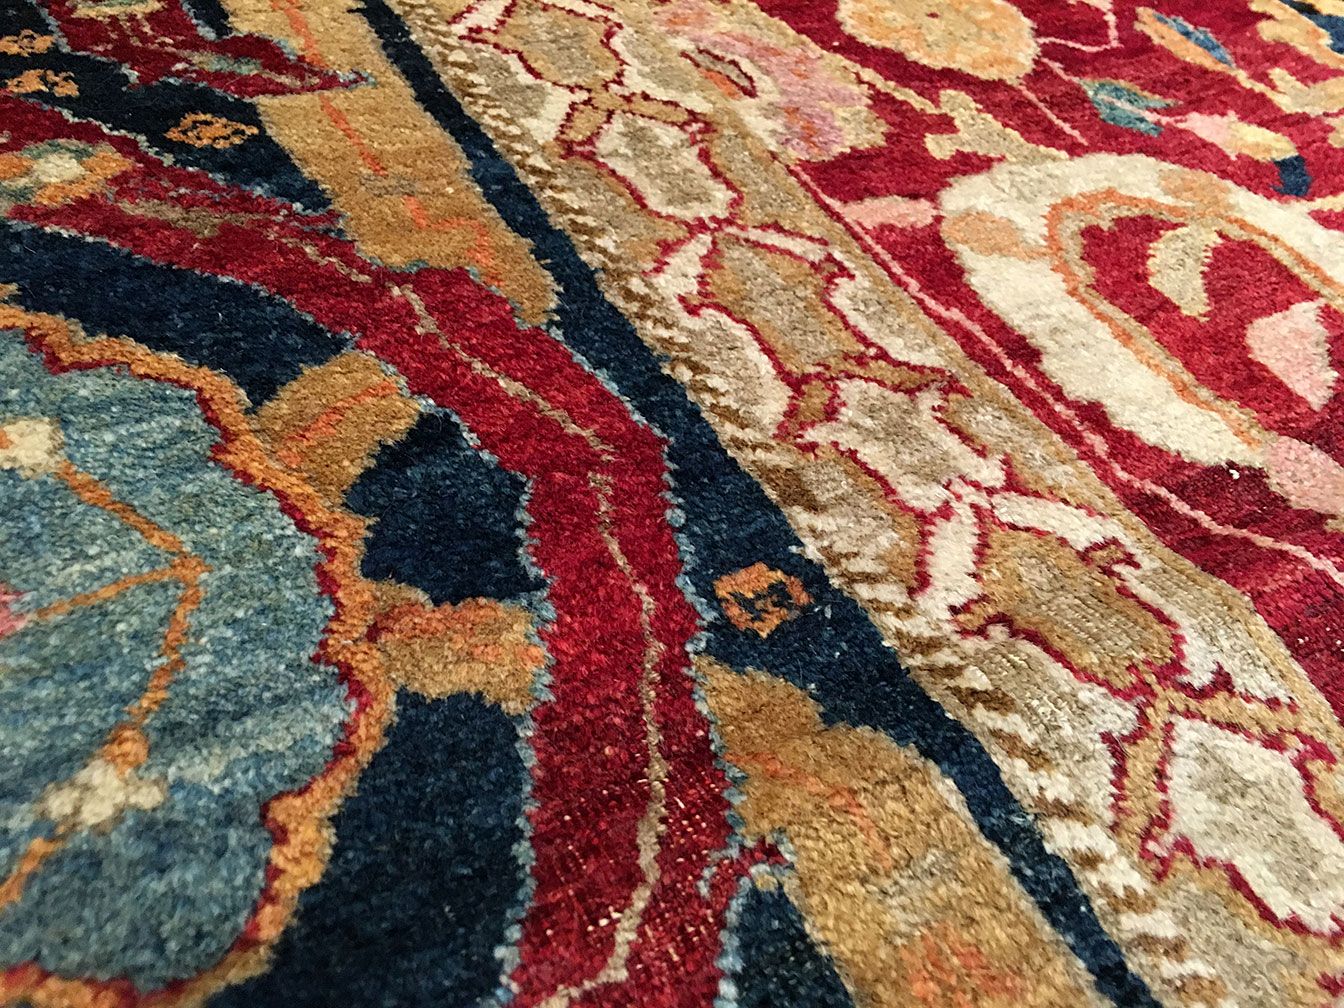 Antique agra Carpet - # 51526